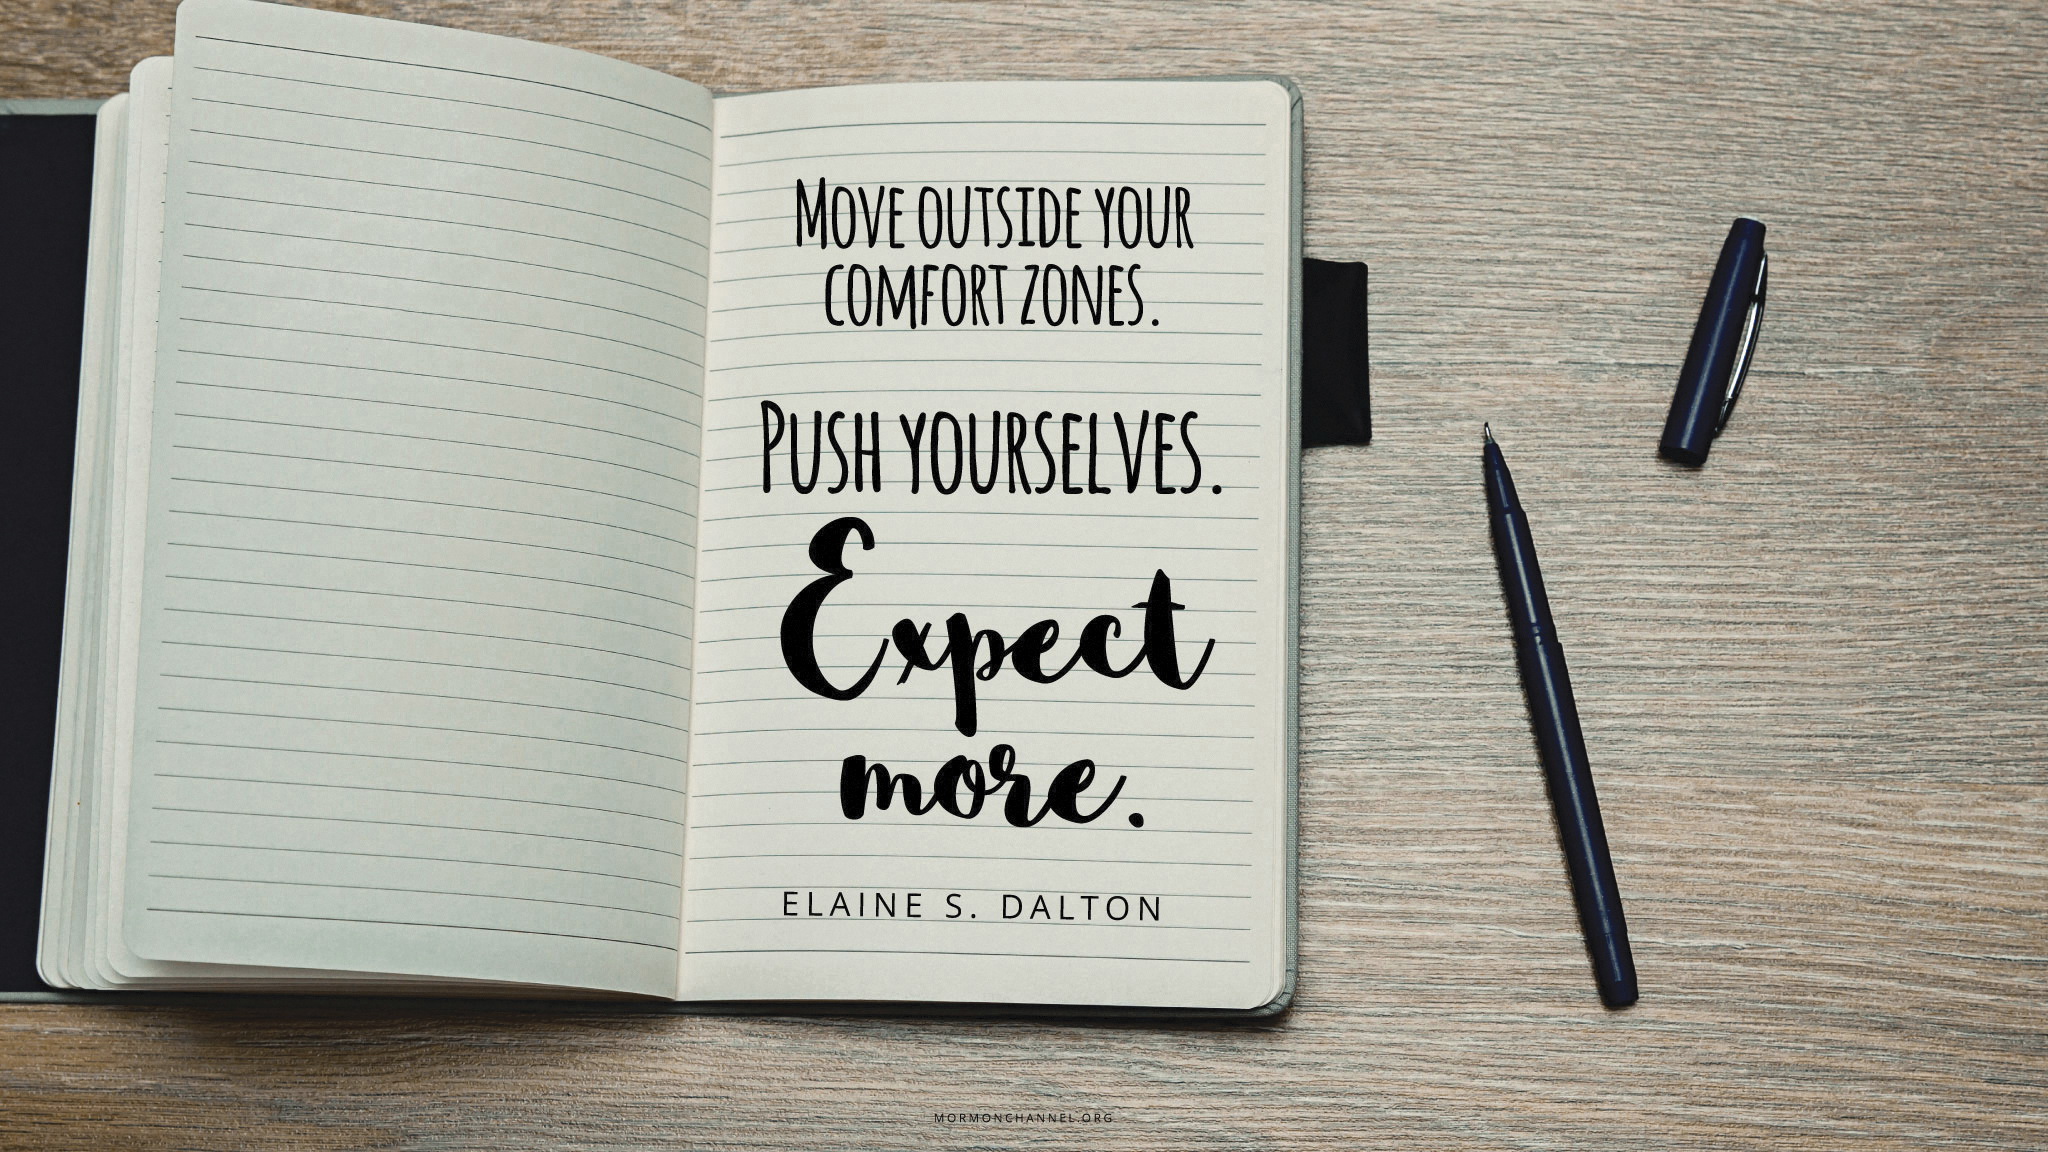 """""""Move outside your comfort zones. Push yourselves. Expect more.""""—Sister Elaine S. Dalton © undefined ipCode 1."""